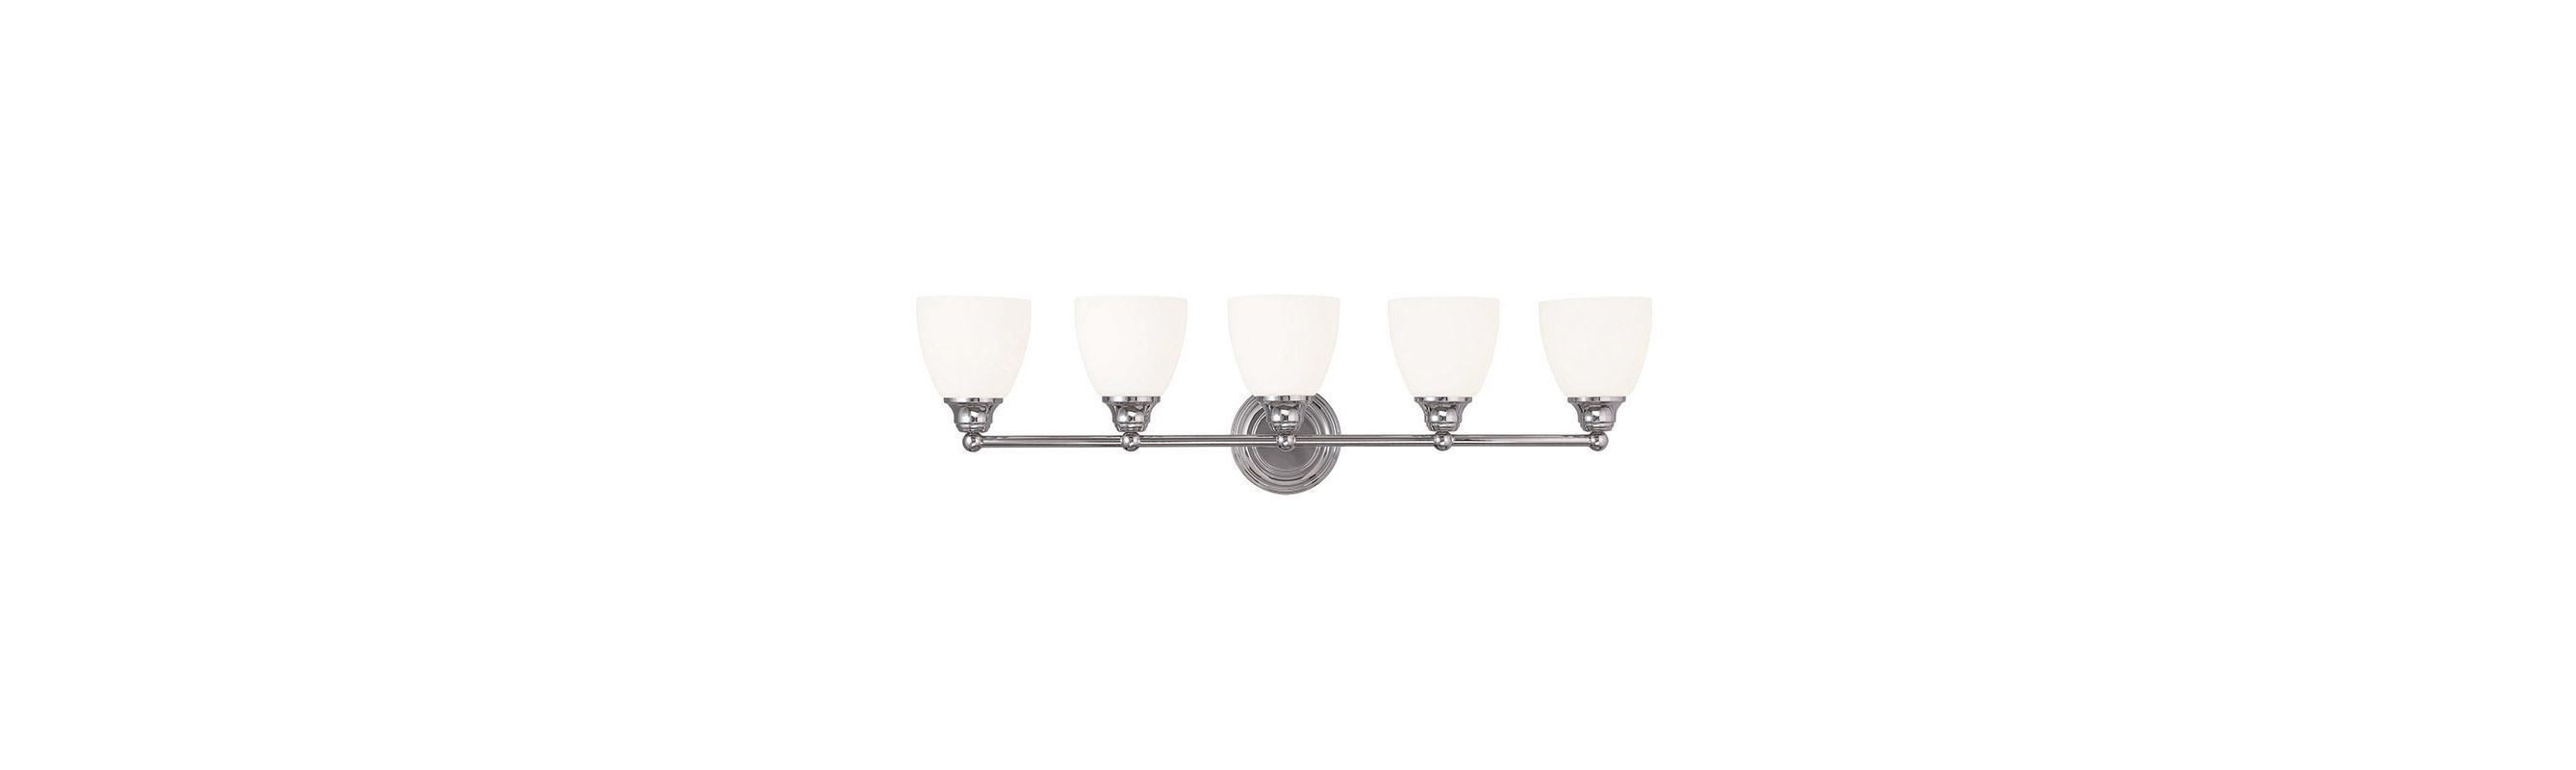 Livex Lighting 13665 Somerville 5 Light Bathroom Vanity Light Chrome